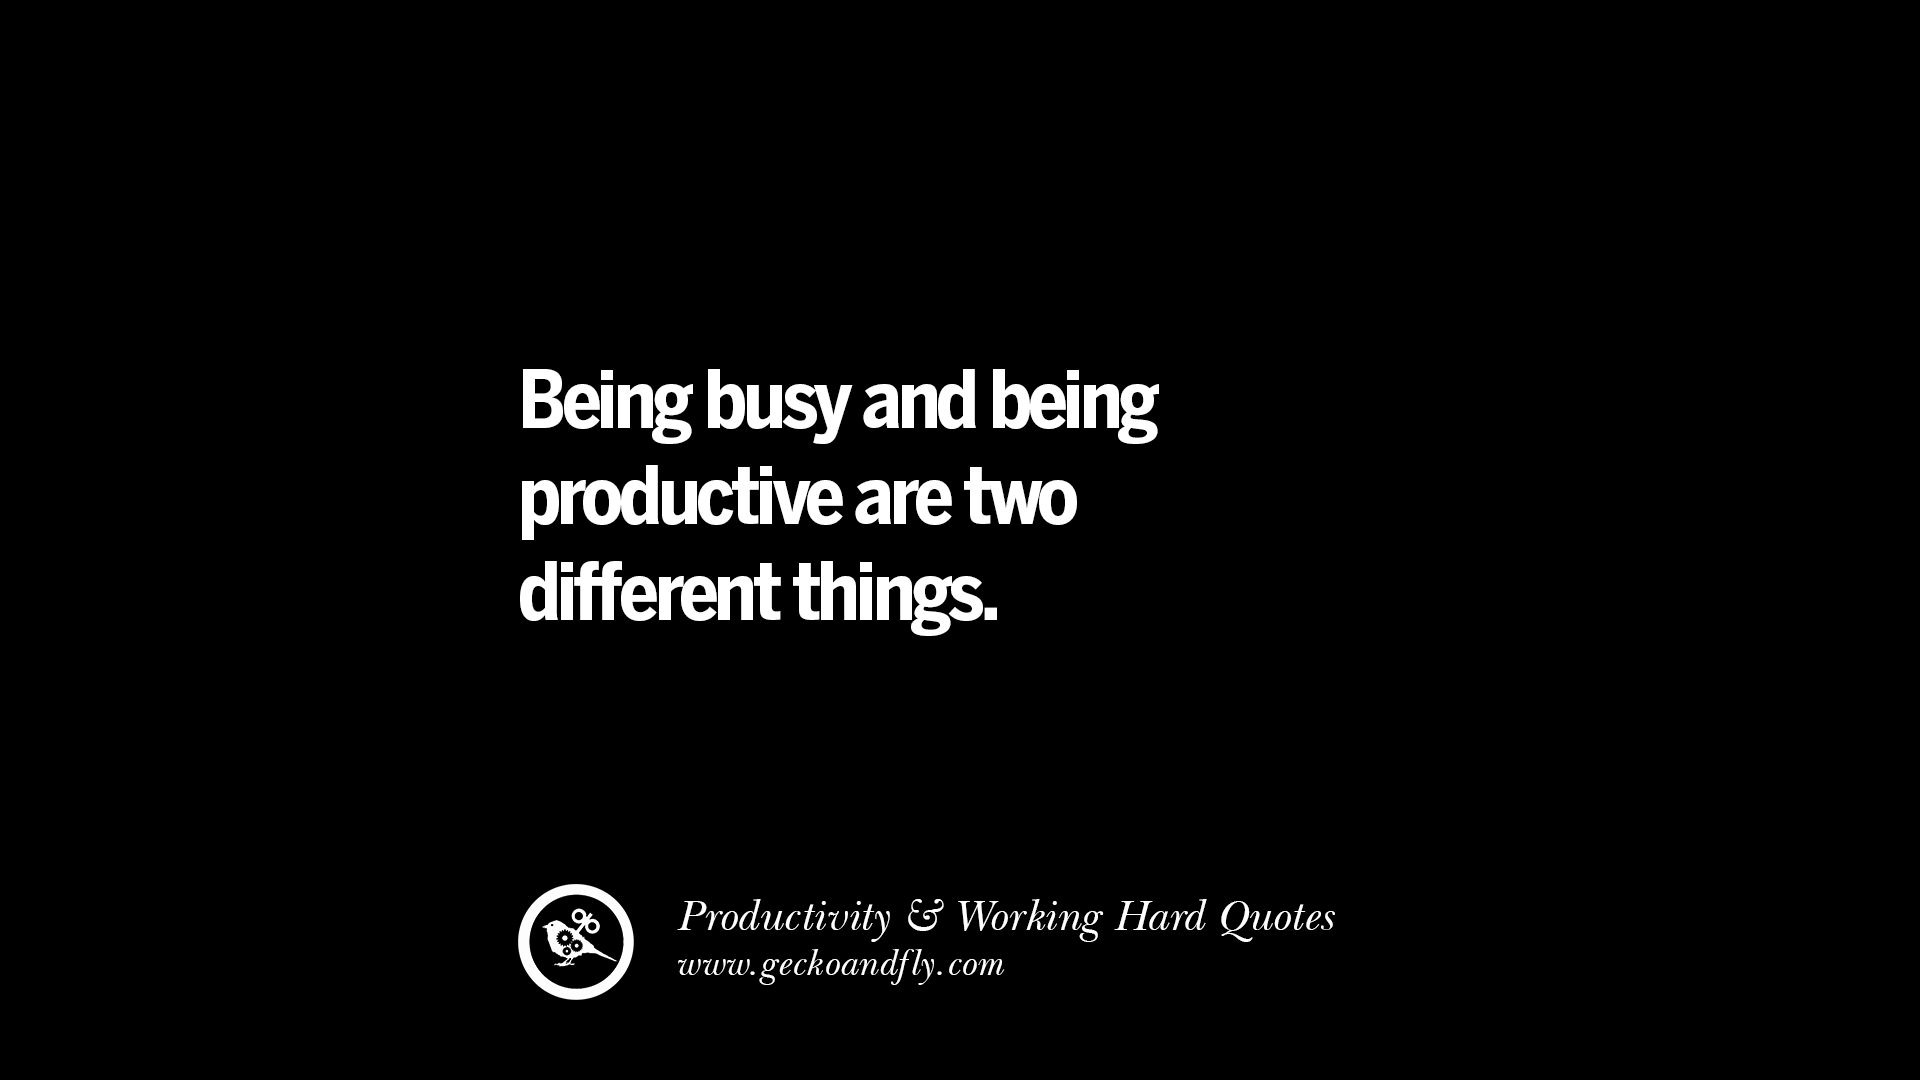 Inspirational Wallpaper Iphone 6 30 Uplifting Quotes On Increasing Productivity And Working